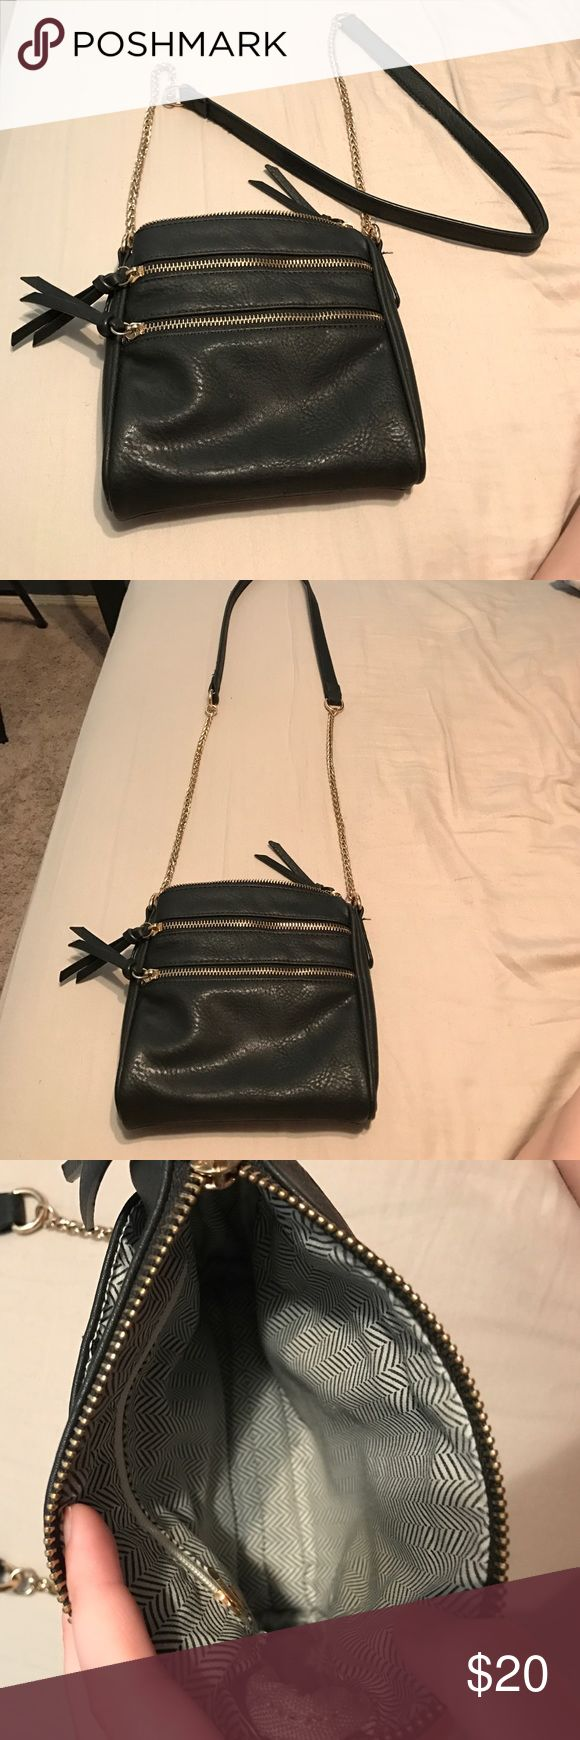 Black faux leather purse Small black faux leather purse with long strap! Such a cute fun bag for a night out! Very clean condition! Only used a few times Bags Mini Bags